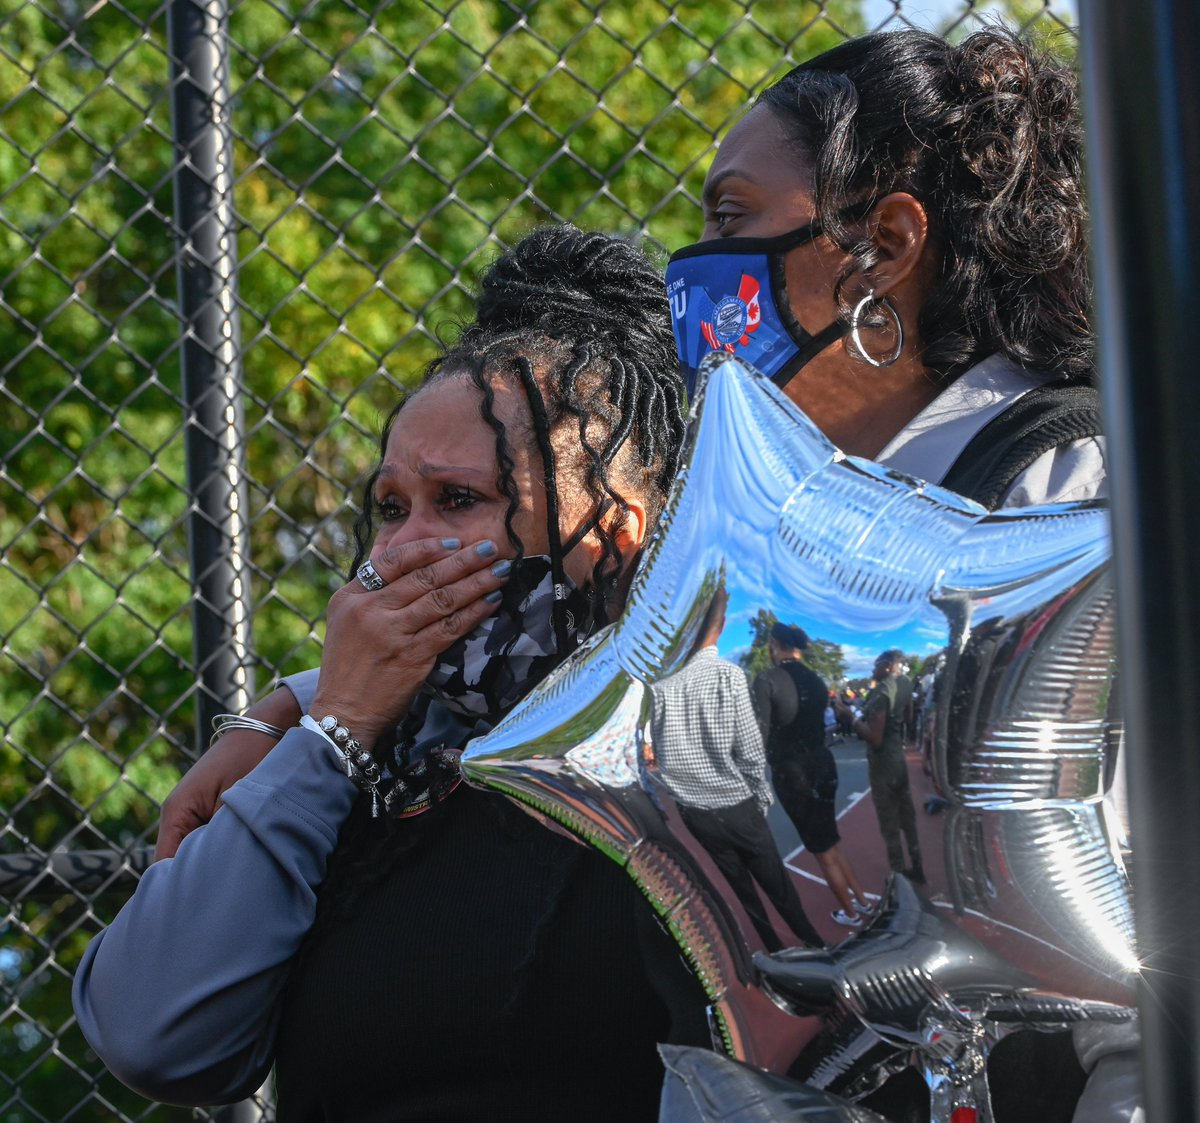 The Baltimore Sun On Twitter Dozens Of Balloons Drifted Through The Air In Southwest Baltimore S Carroll Park On Tuesday Evening As People Chanted Not One More They Gathered To Remember Marcus Parks In 2019, parks got married. twitter